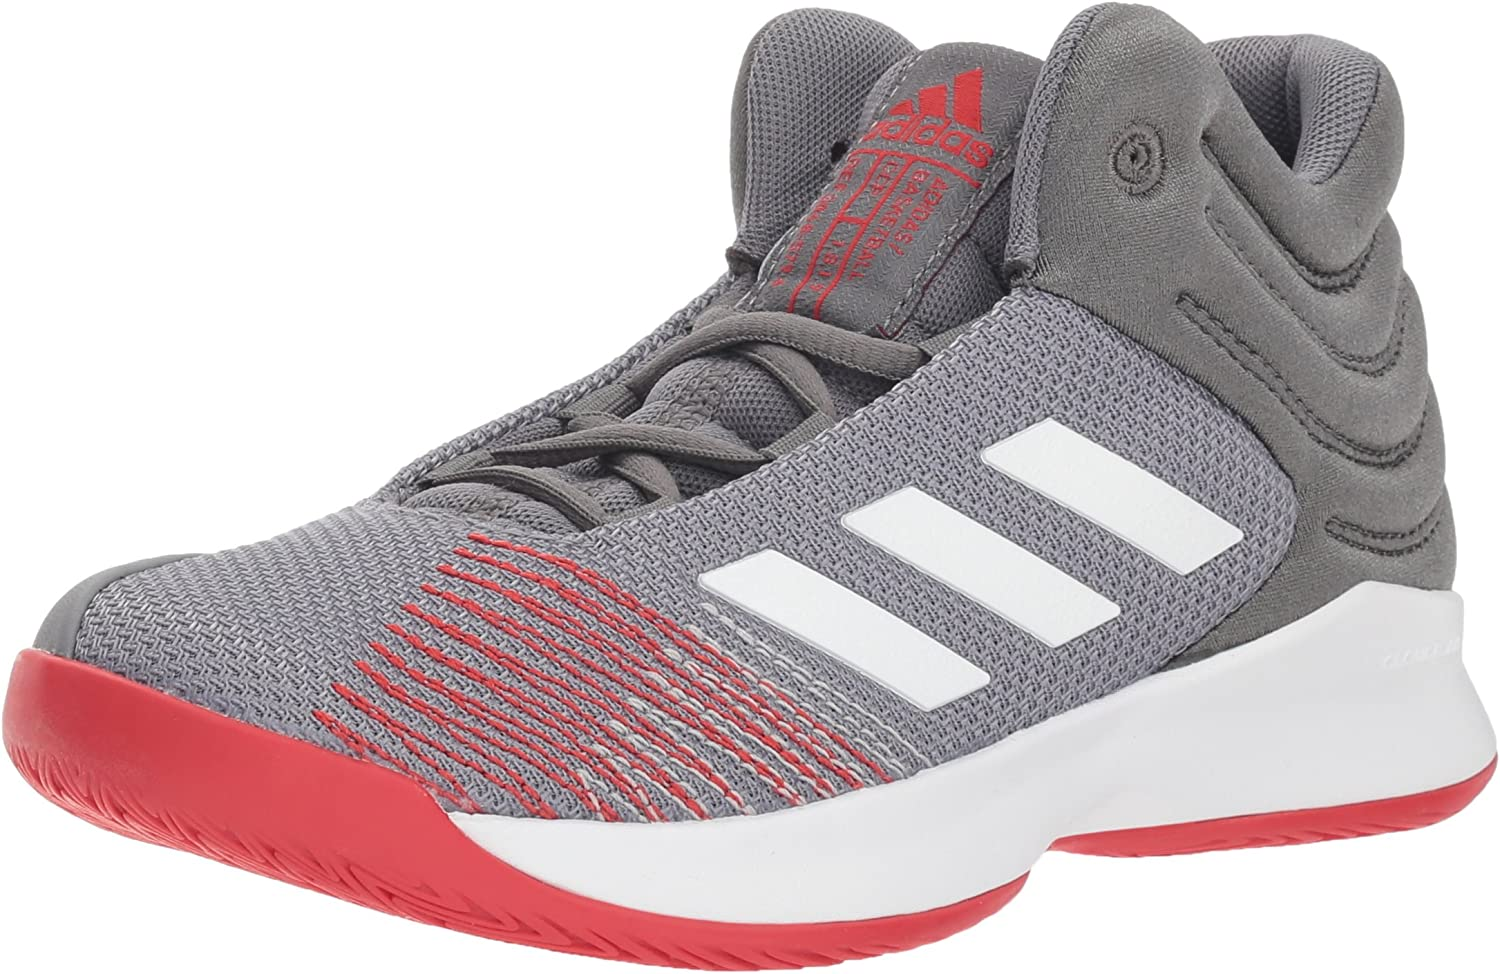 Adidas Explosive Ignite 2018 (Wide) shoes Kid's Basketball 10.5K Grey-White